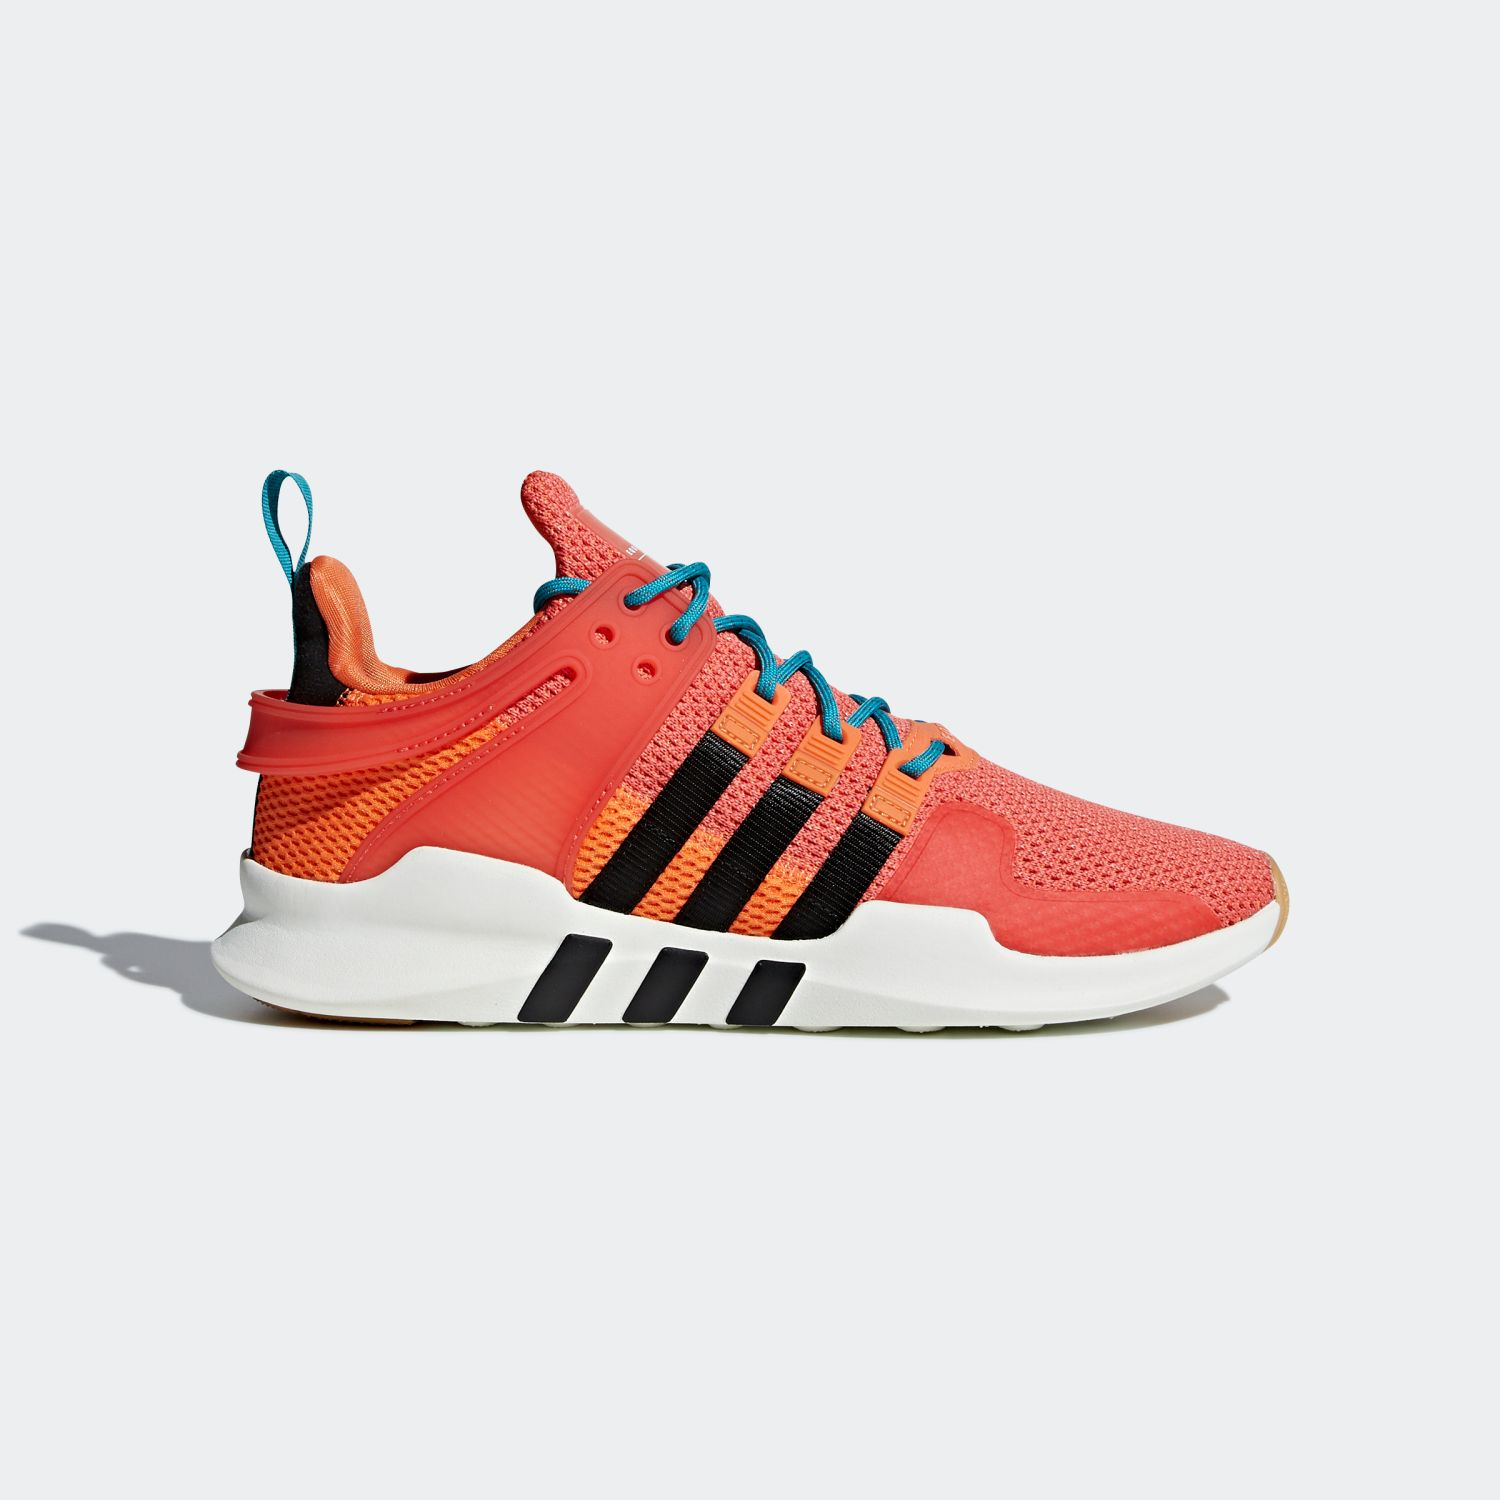 EQT Support Adv Summer Spice